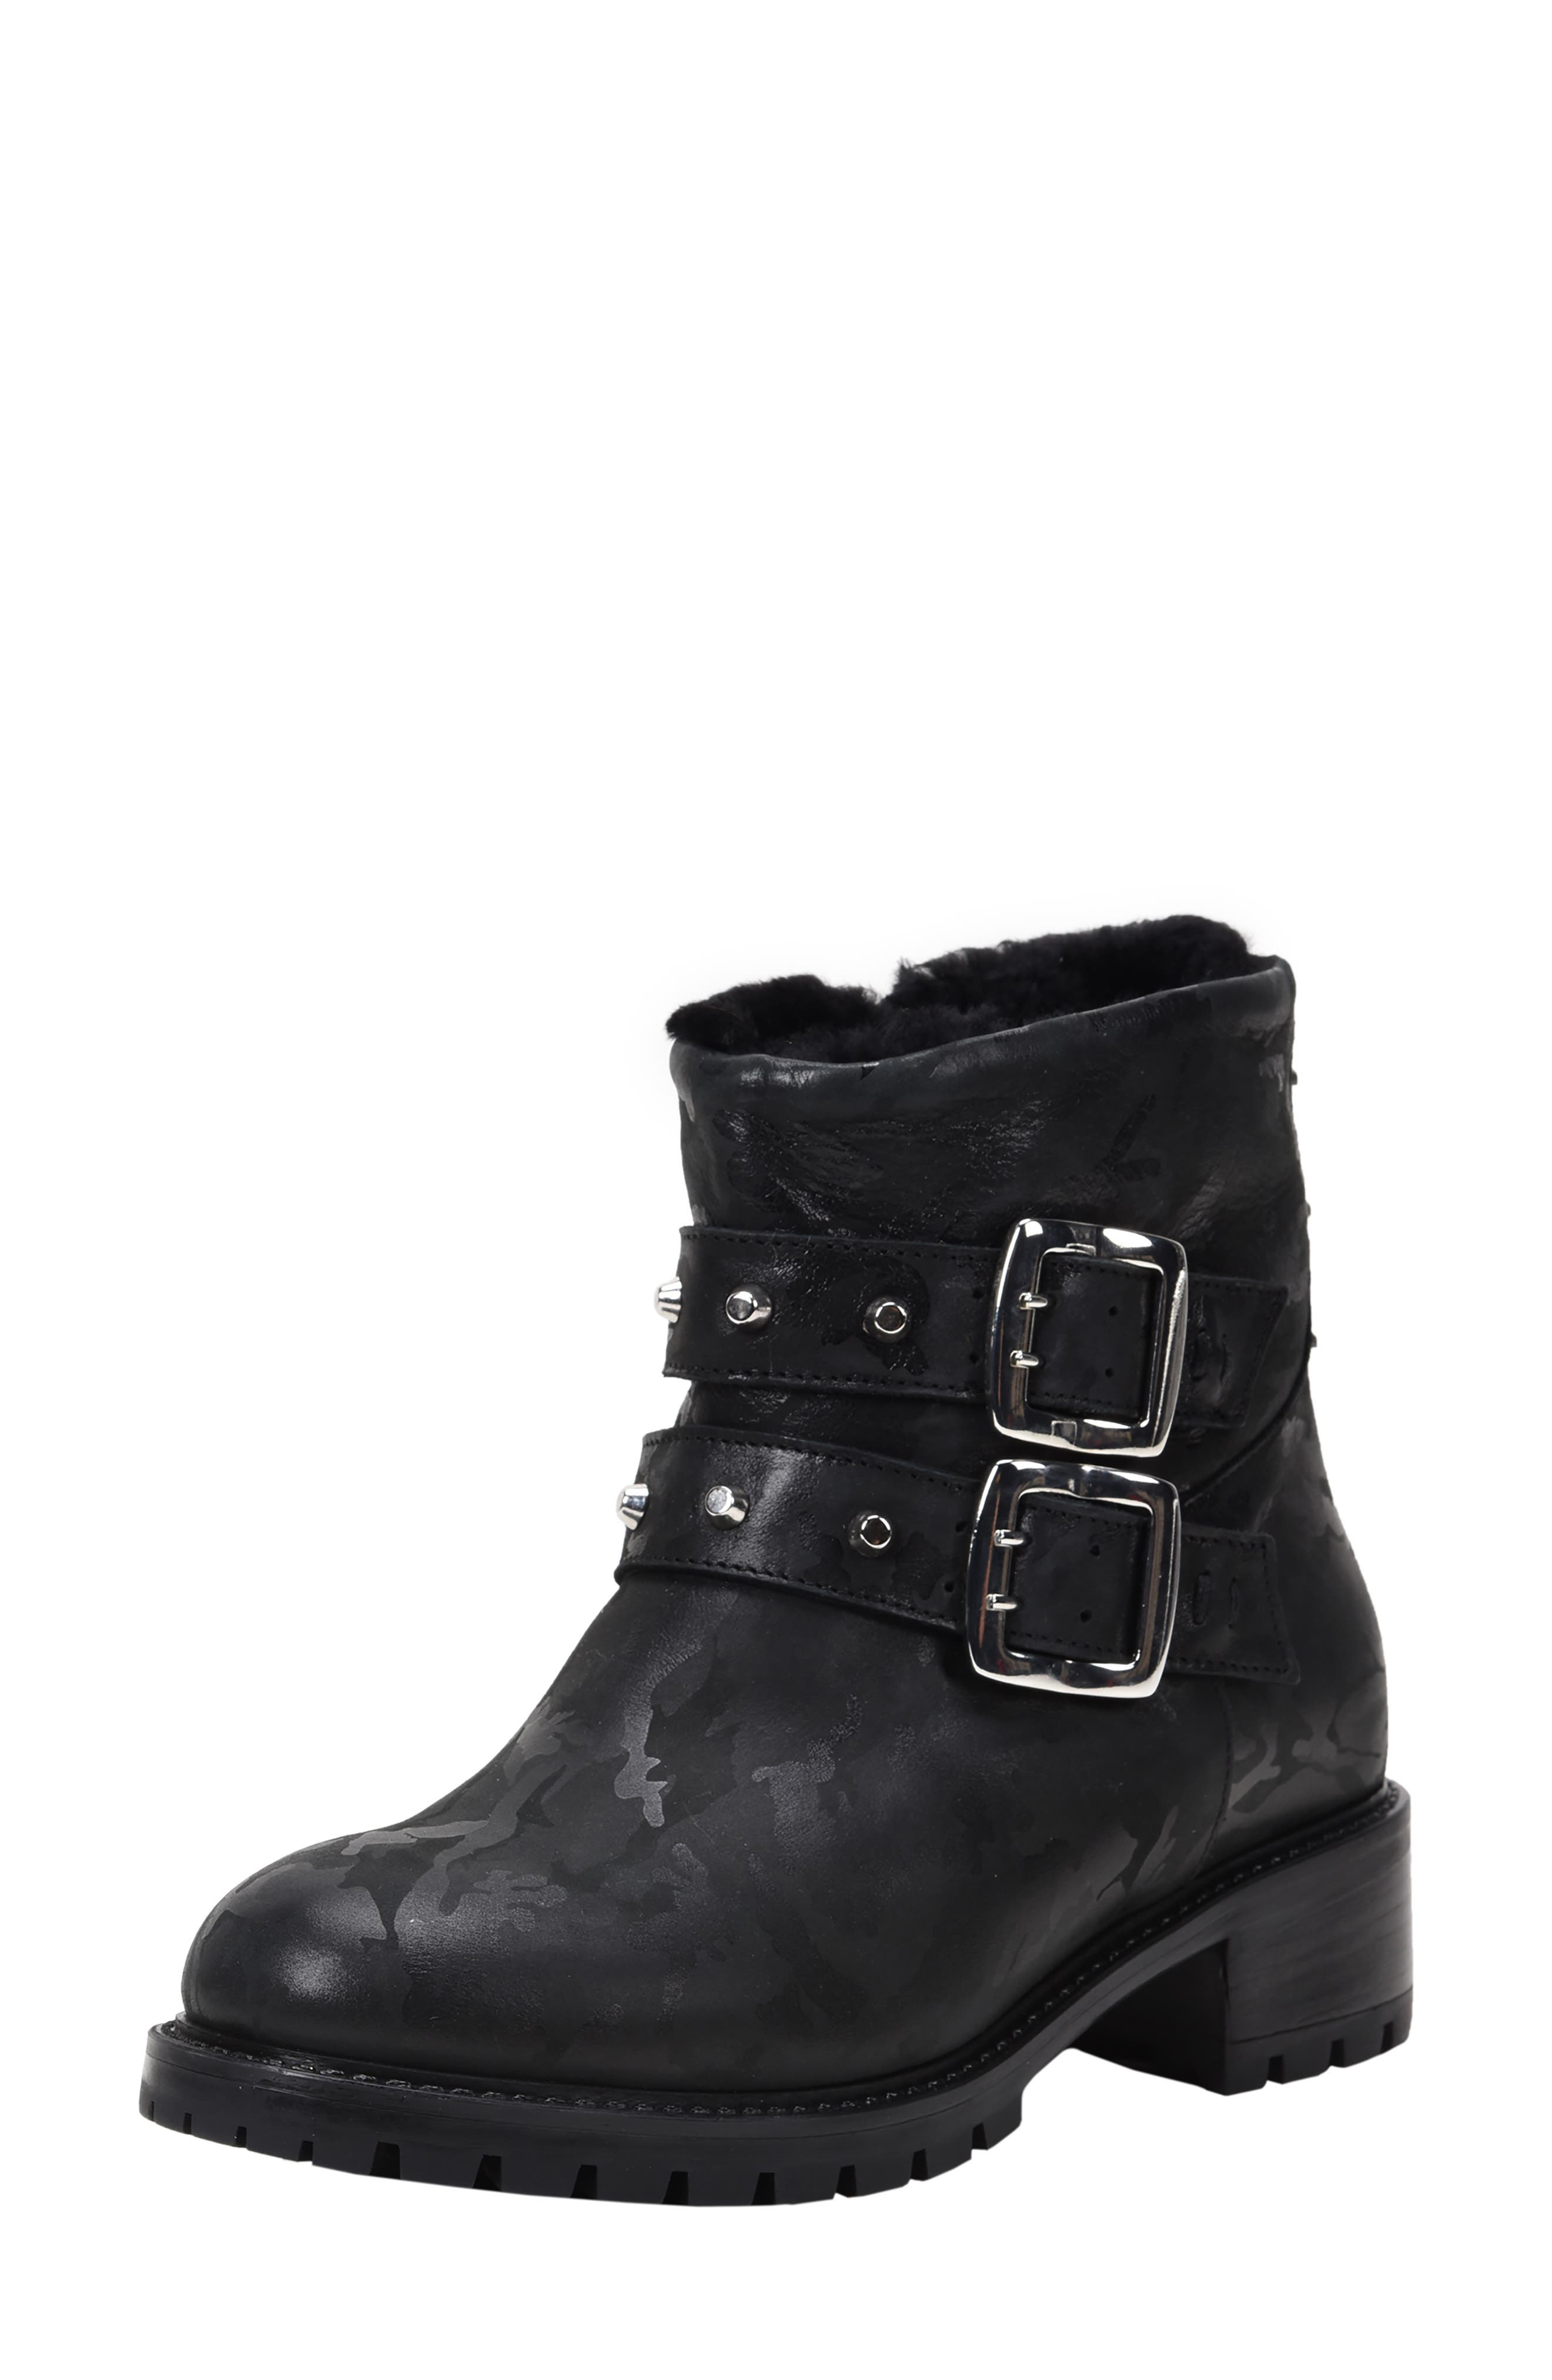 Stefana SP Genuine Shearling Lined Waterproof Bootie,                             Main thumbnail 1, color,                             BLACK CAMO LEATHER